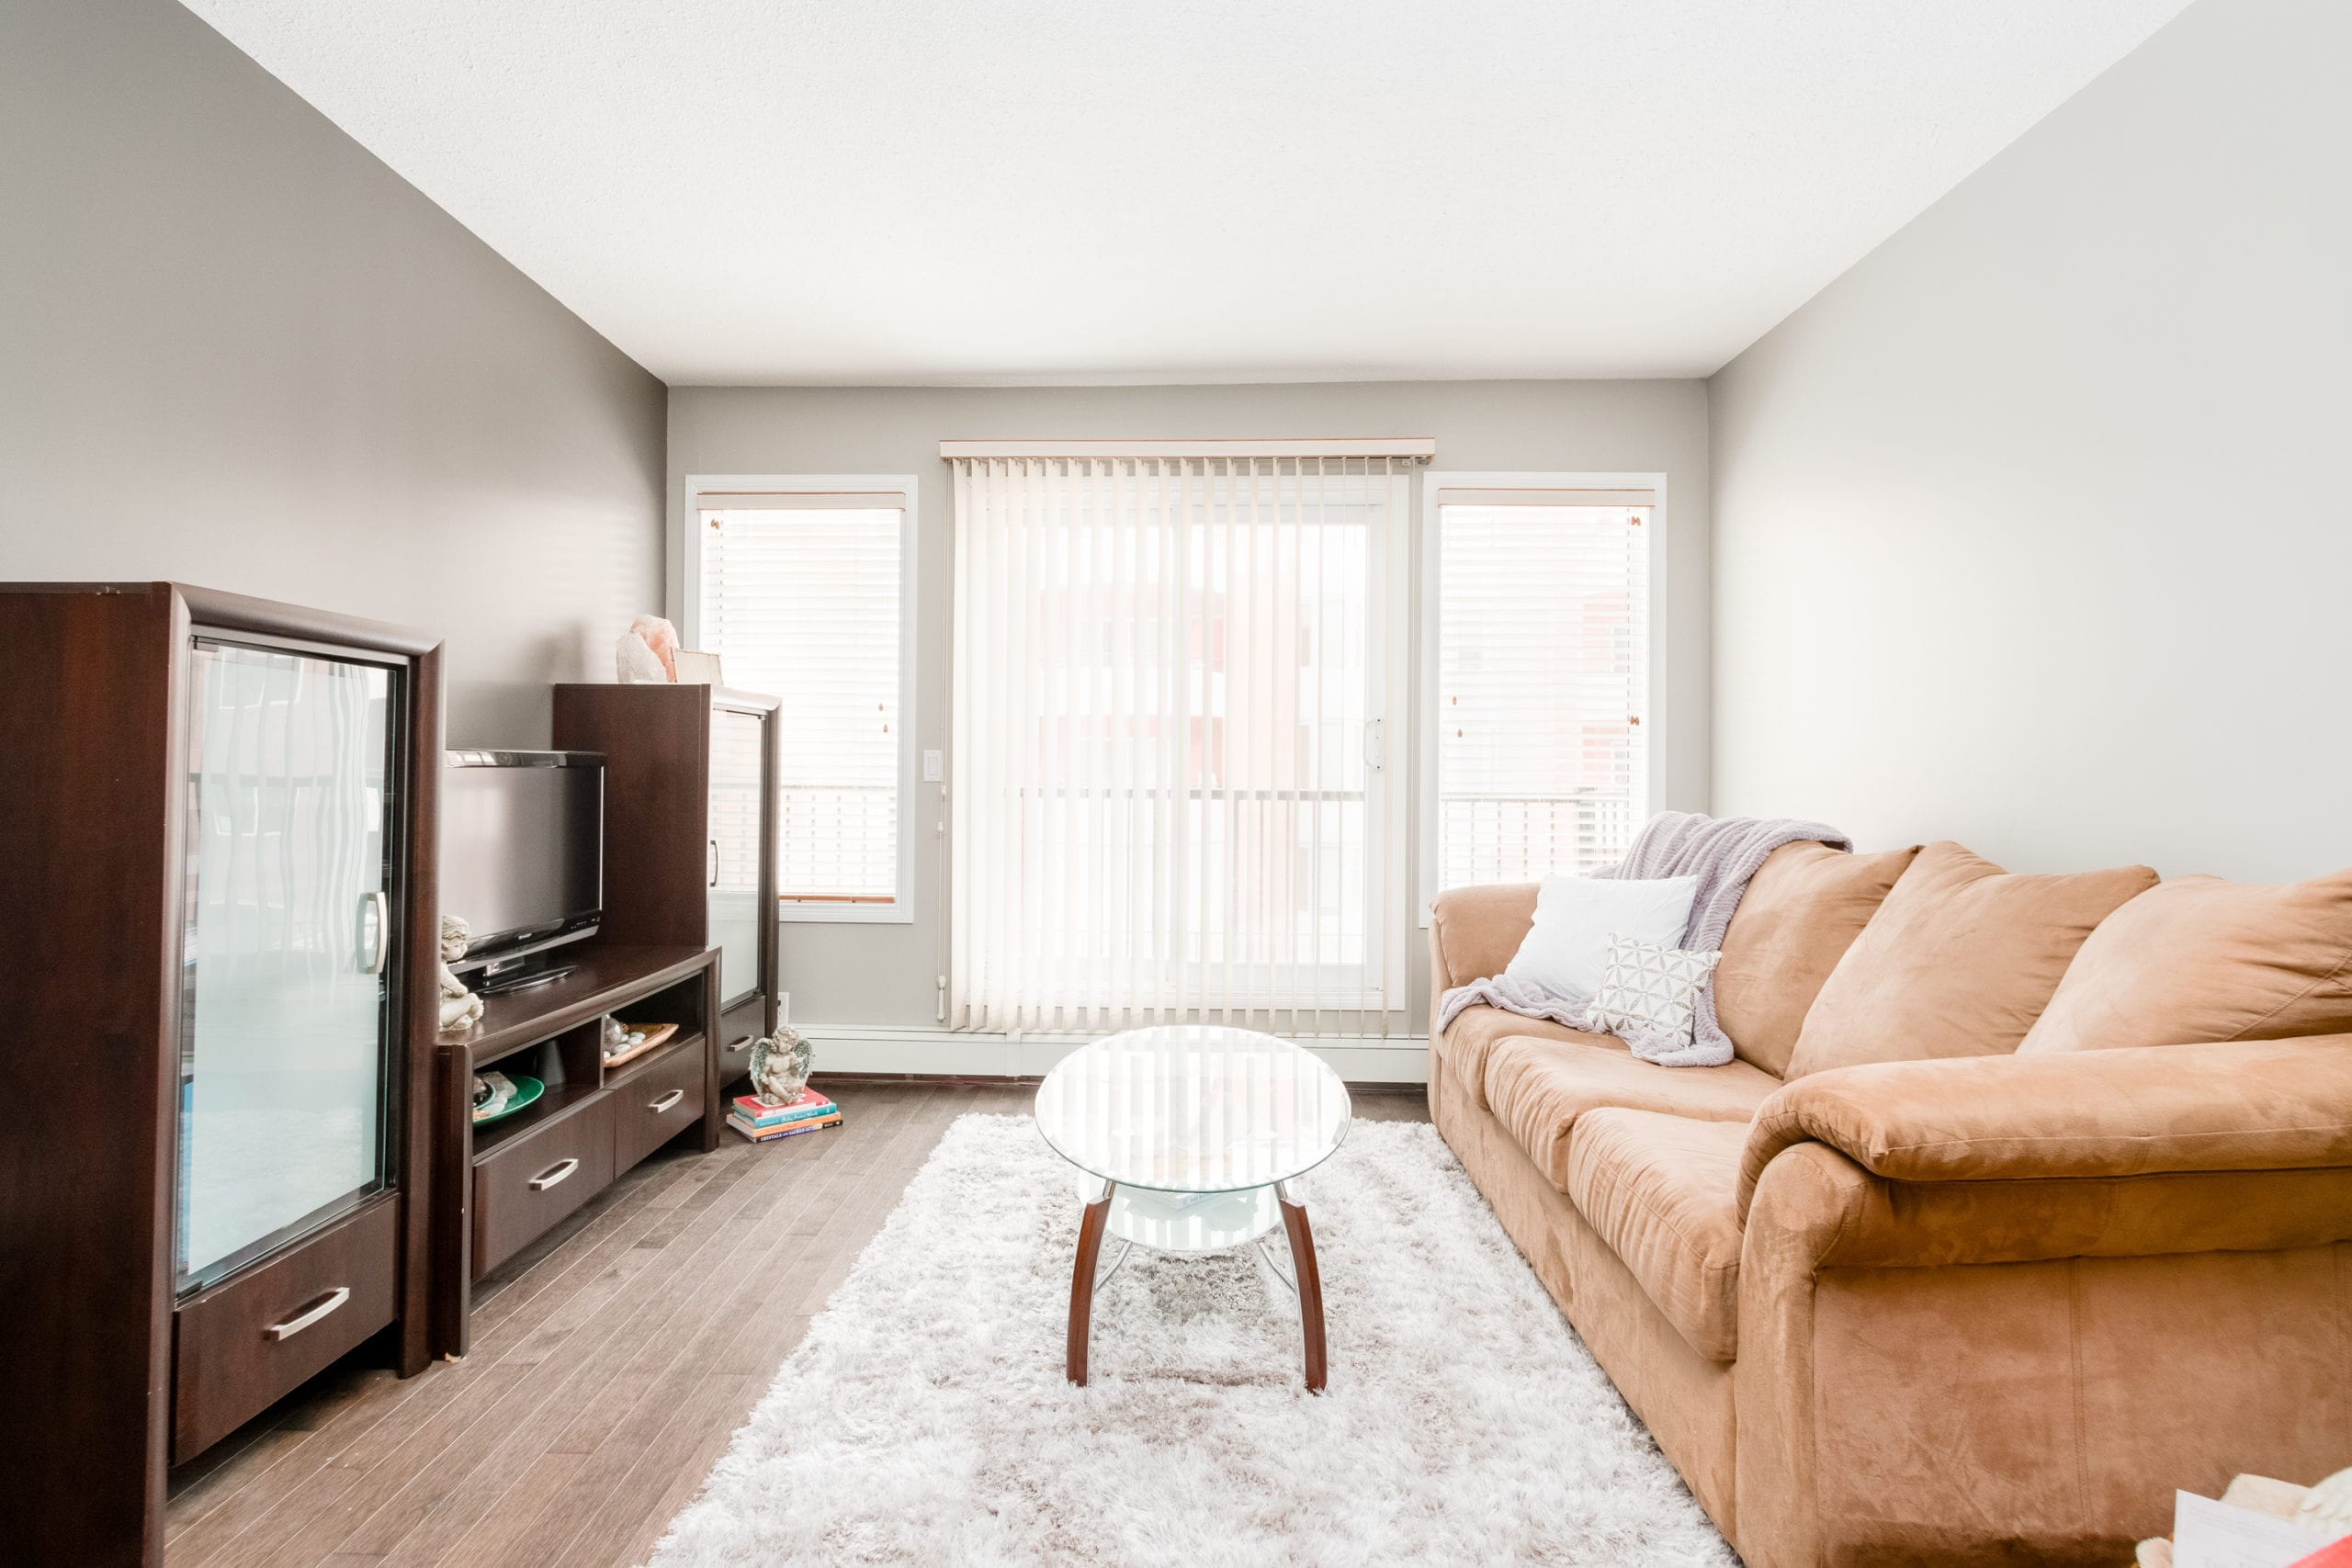 Hello Gorgeous - 207 1424 22 Ave SW Calgary - Tara Molina Real Estate (8 of 16)